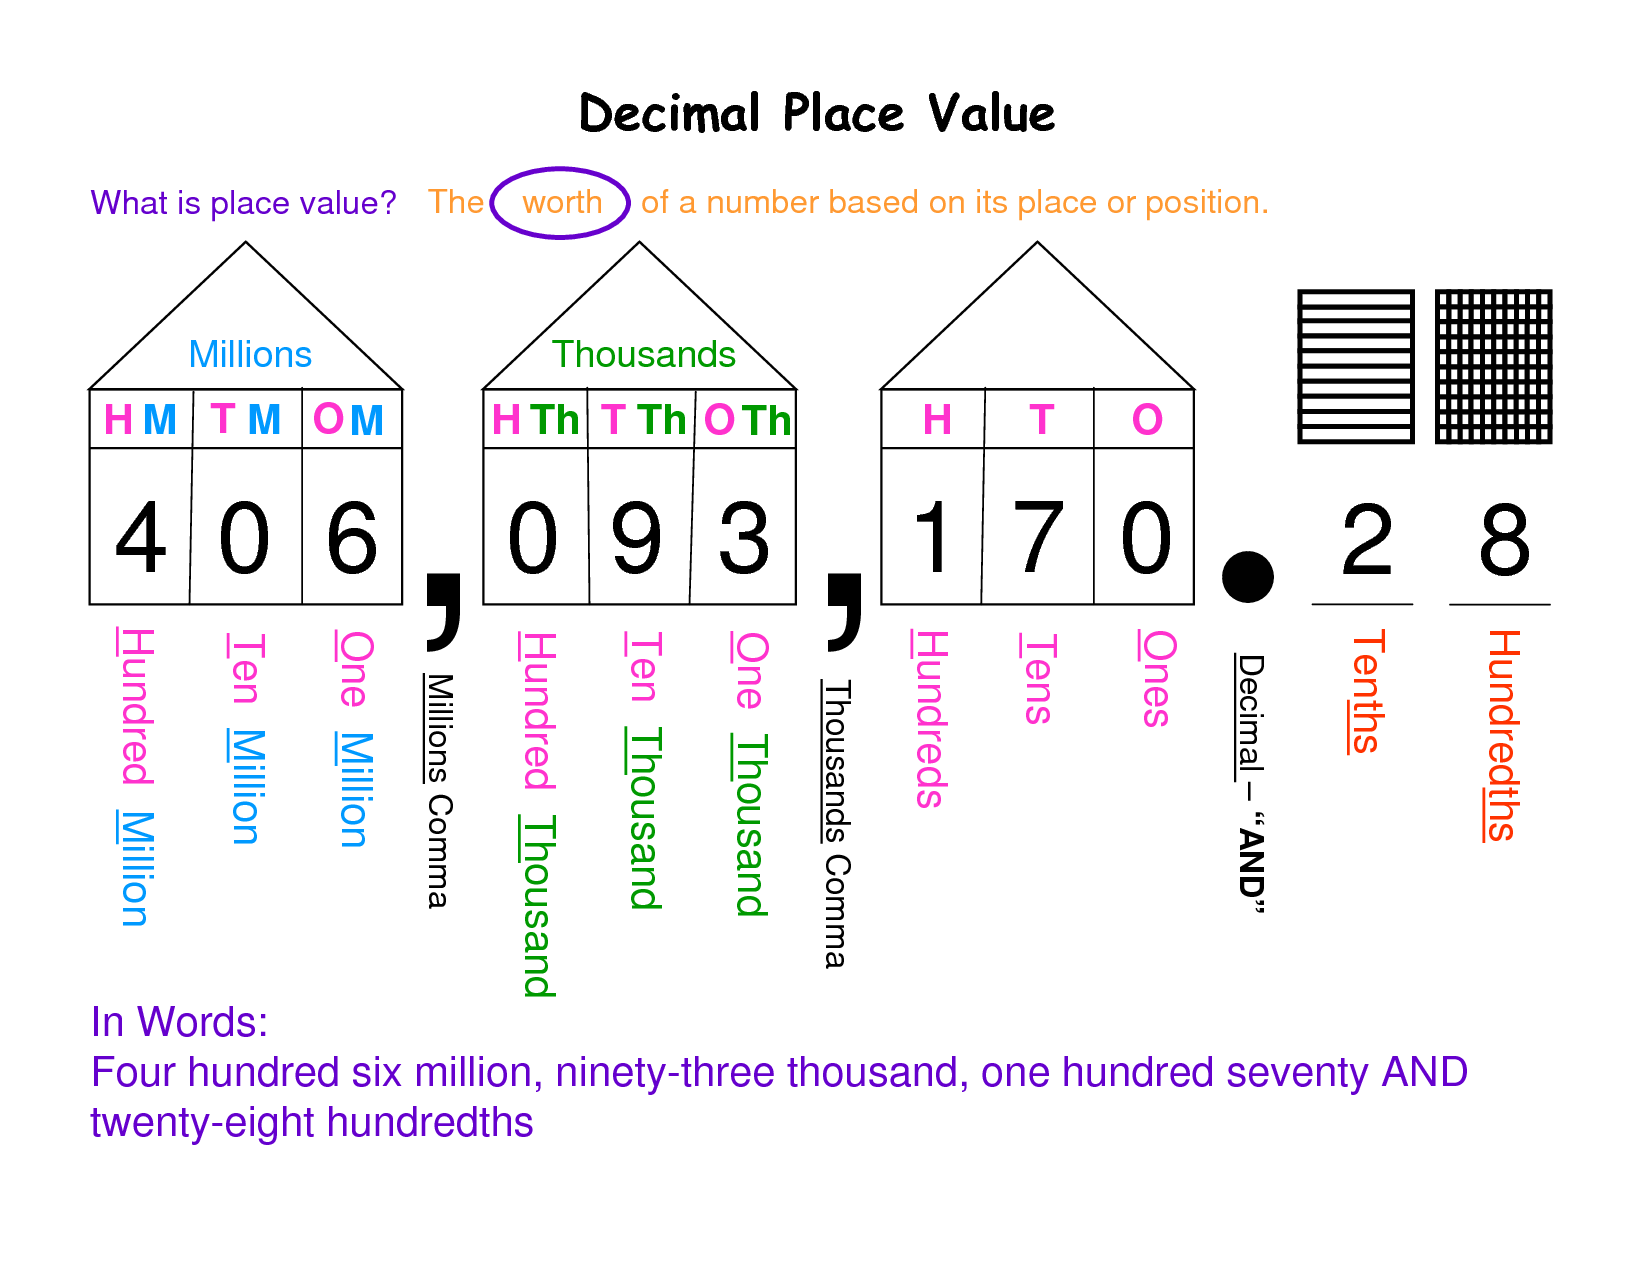 Full Size Decimal Place Value Chart Image Result